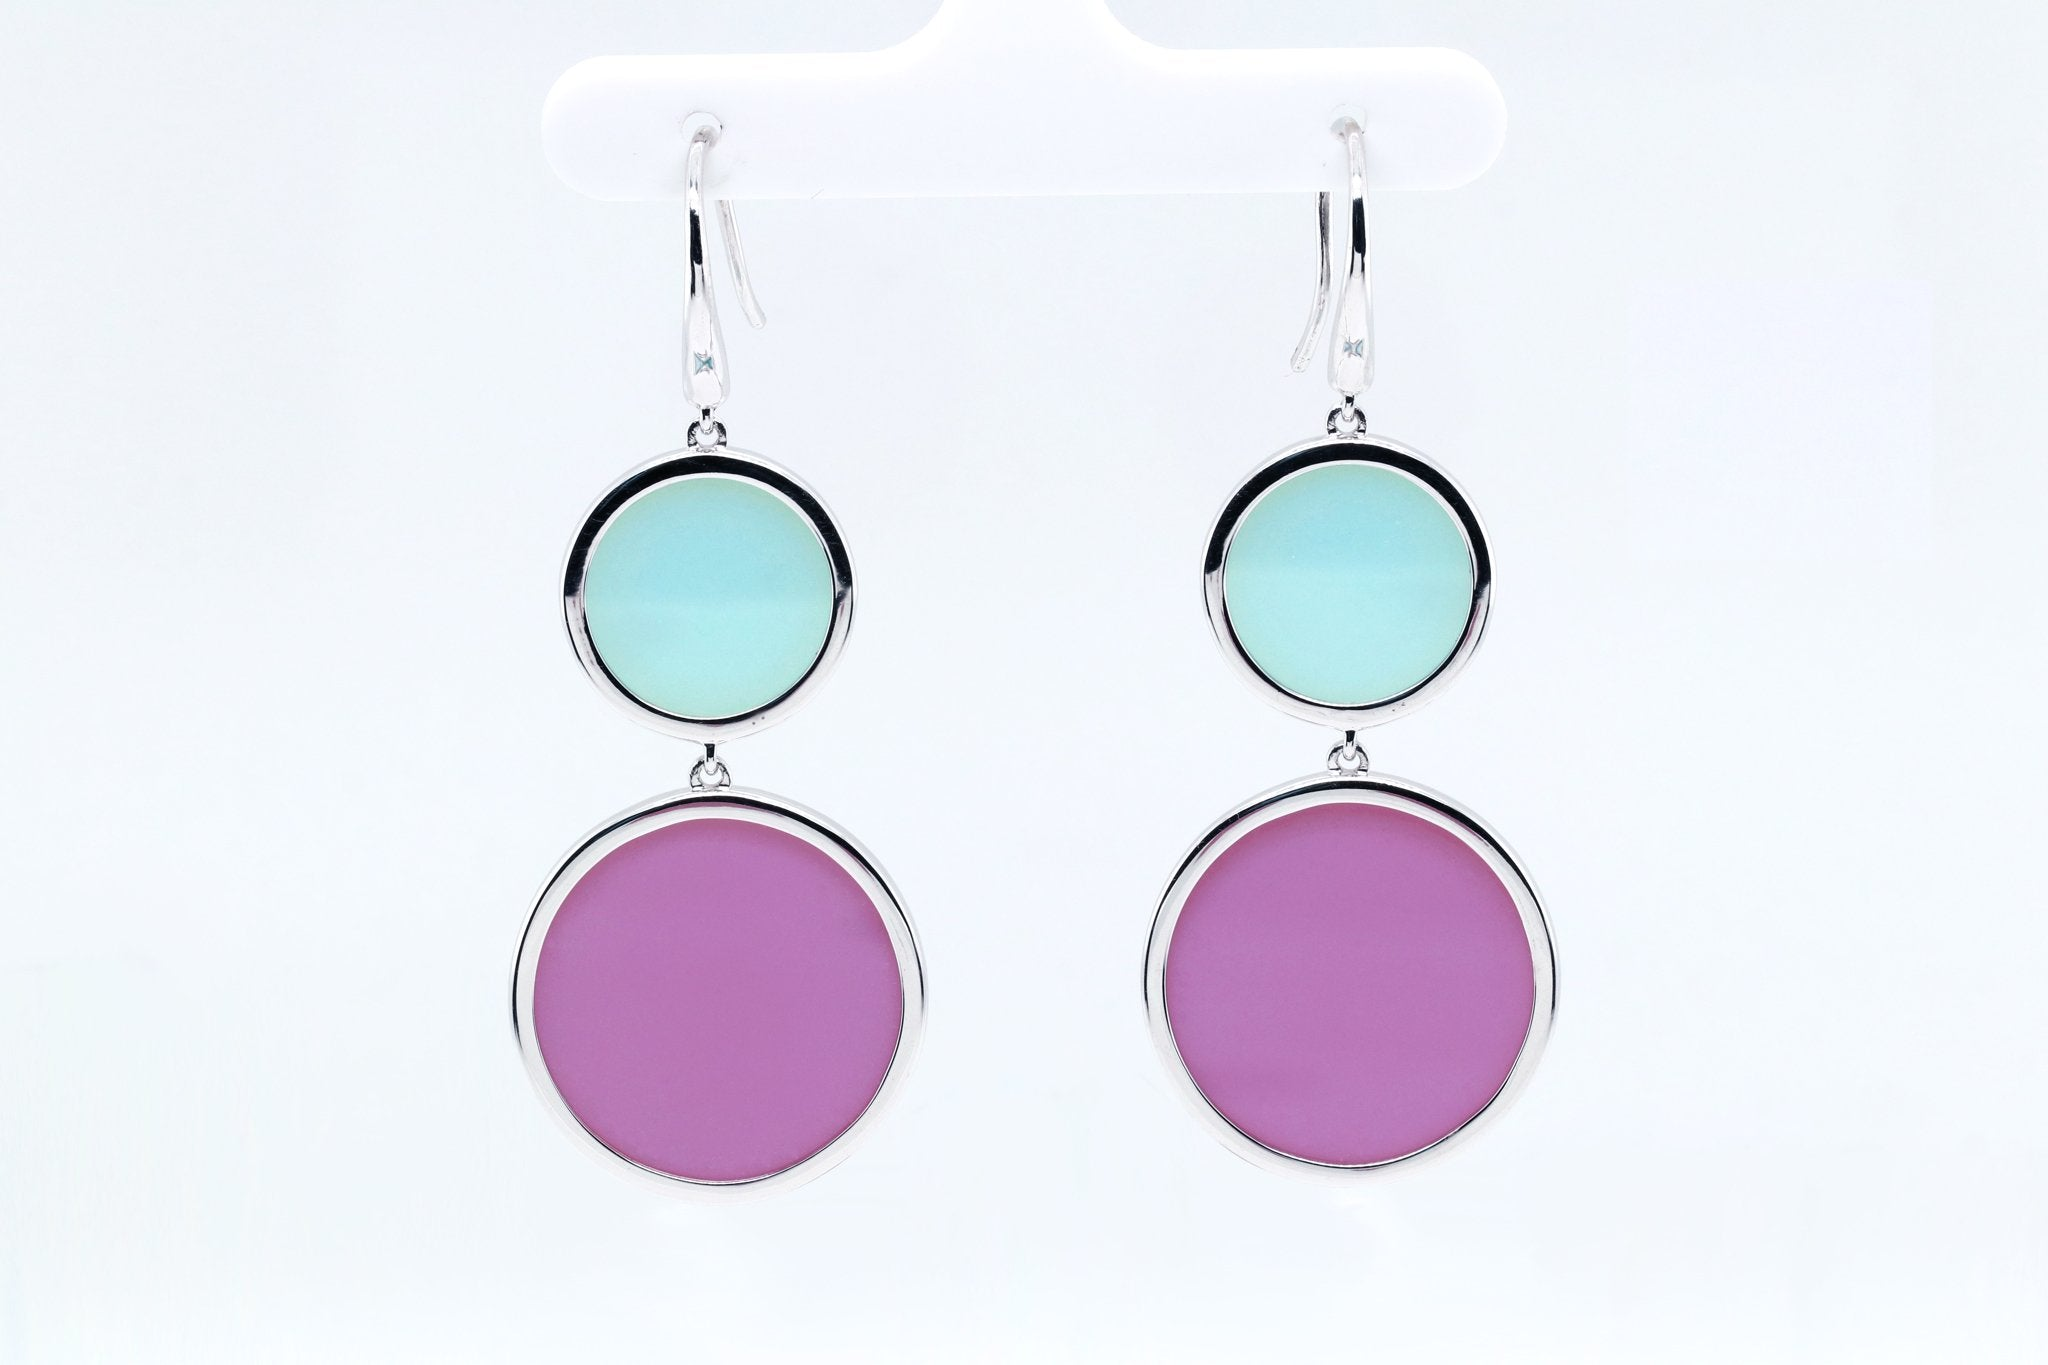 Pastel polka dot style earrings